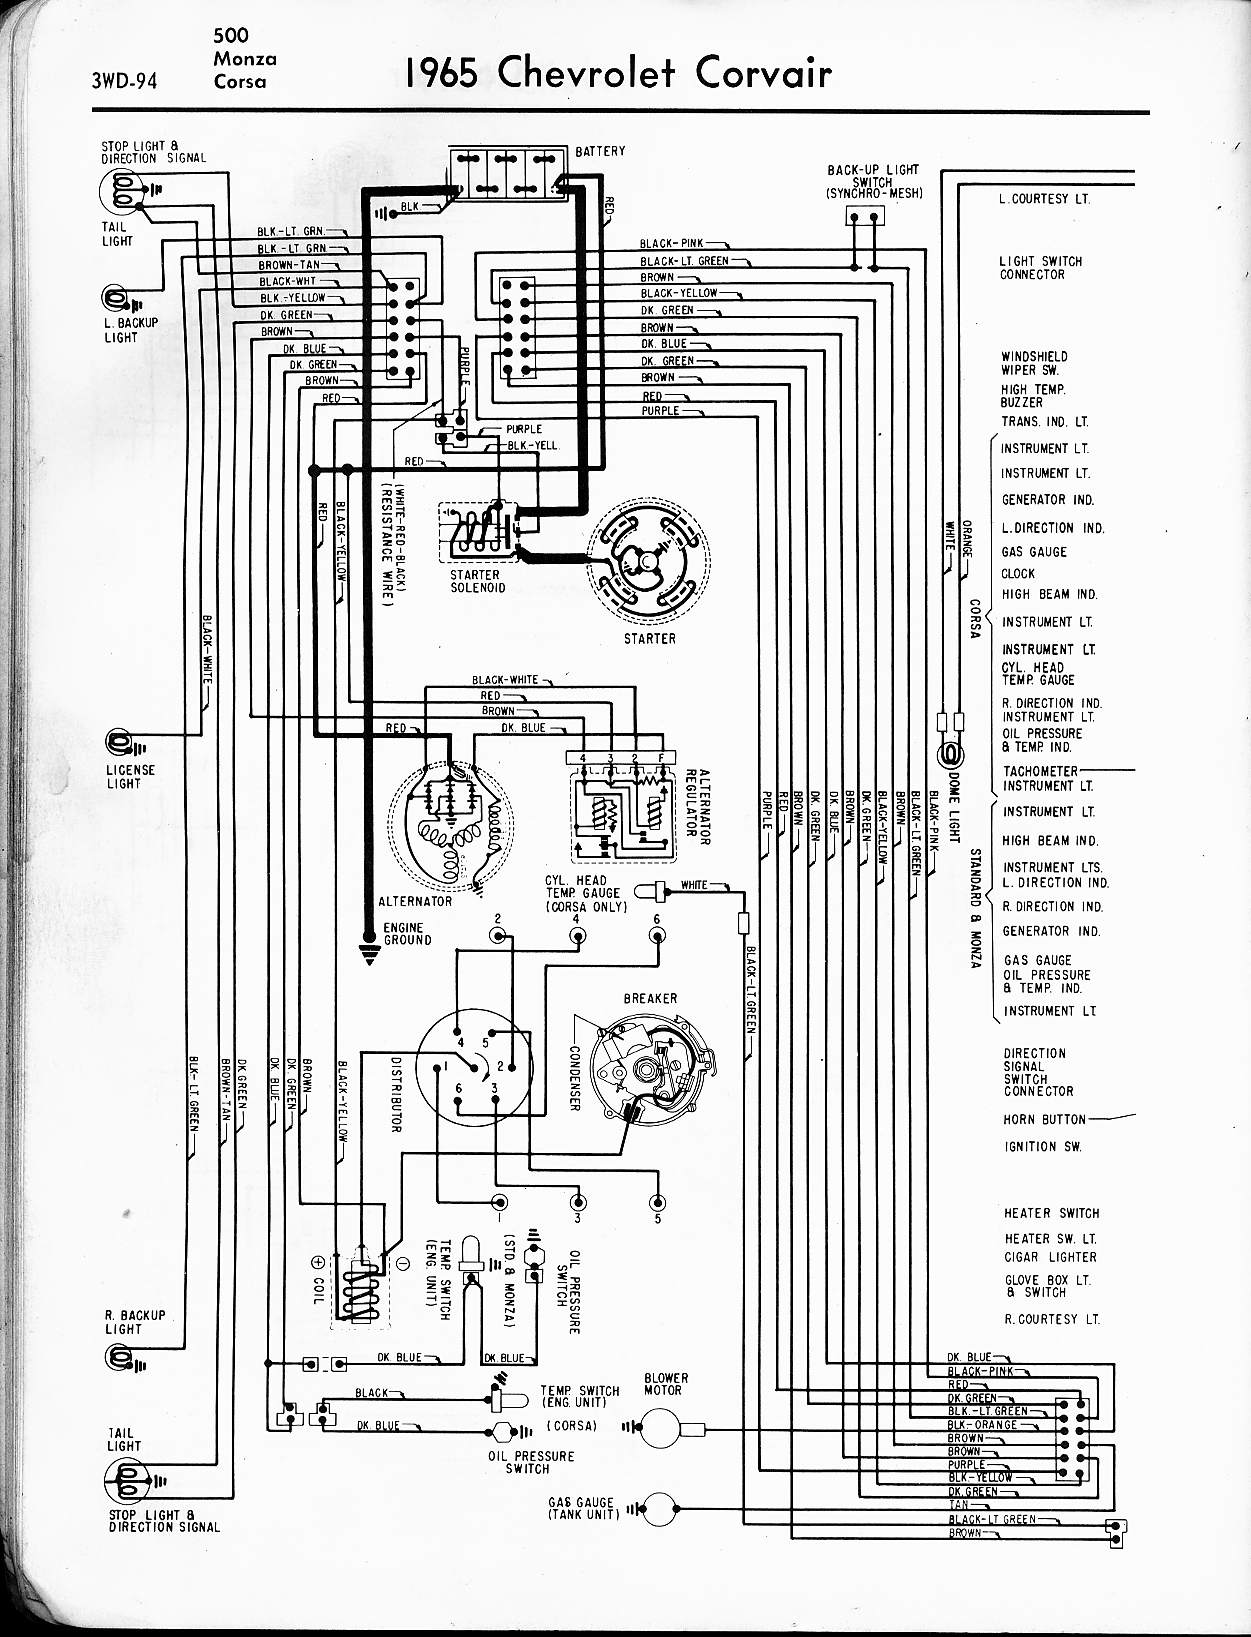 1963 Corvair Wiring Diagram Good Guide Of 1961 Apache Truck Ignition Diagrams Rh Bwhw Michelstadt De 1965 Chevelle